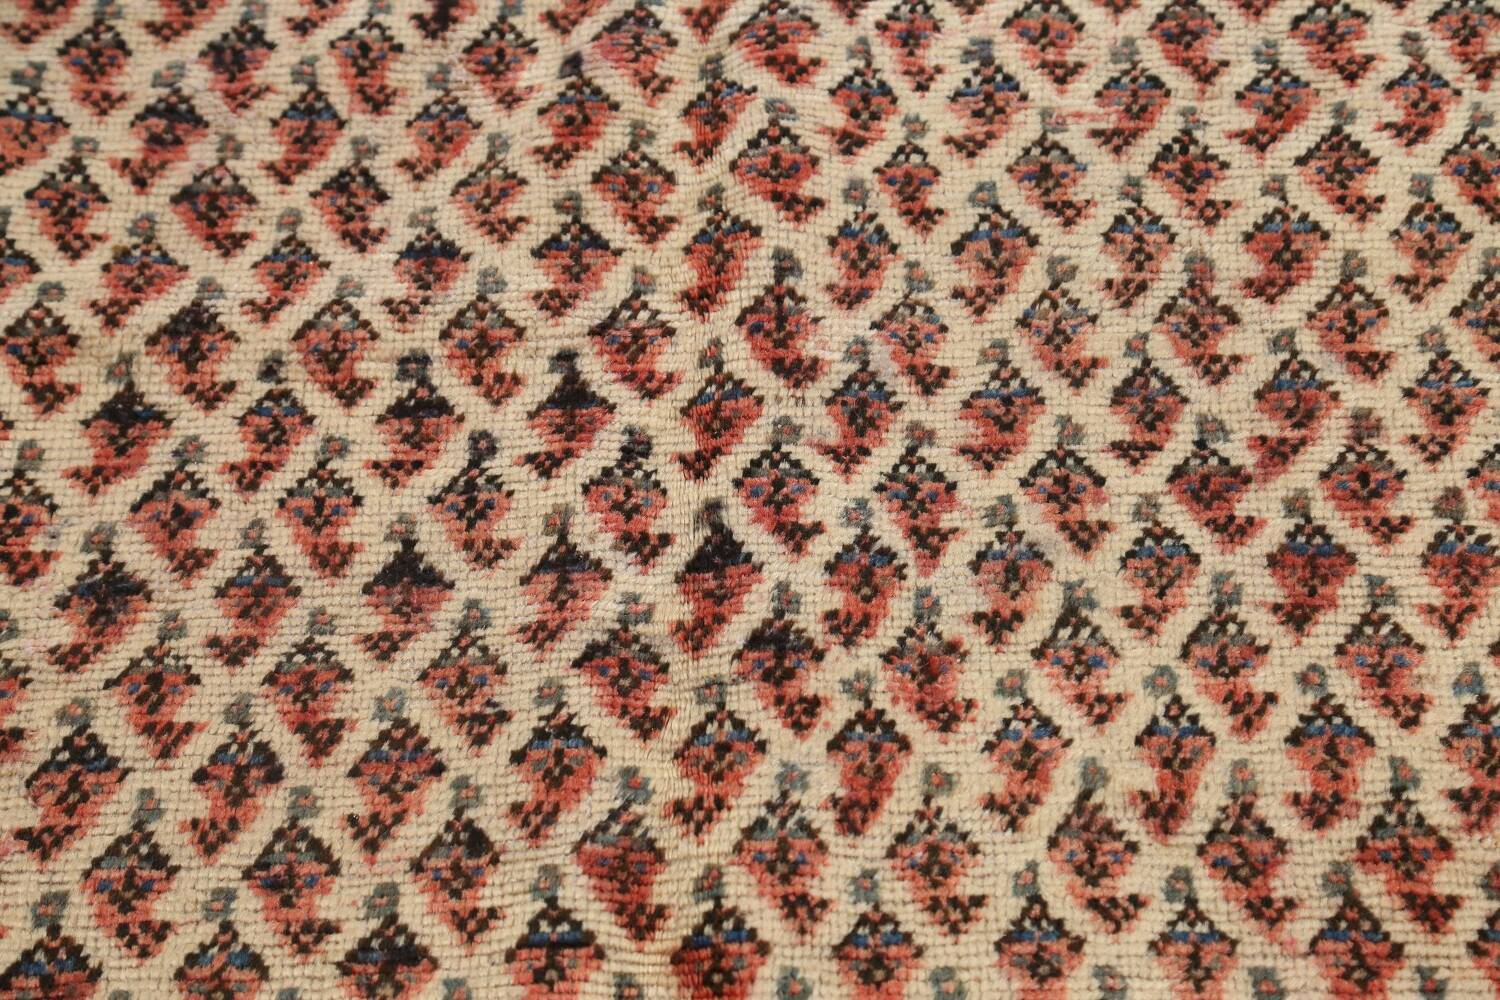 All-Over Boteh Botemir Persian Area Rug 7x11 image 10